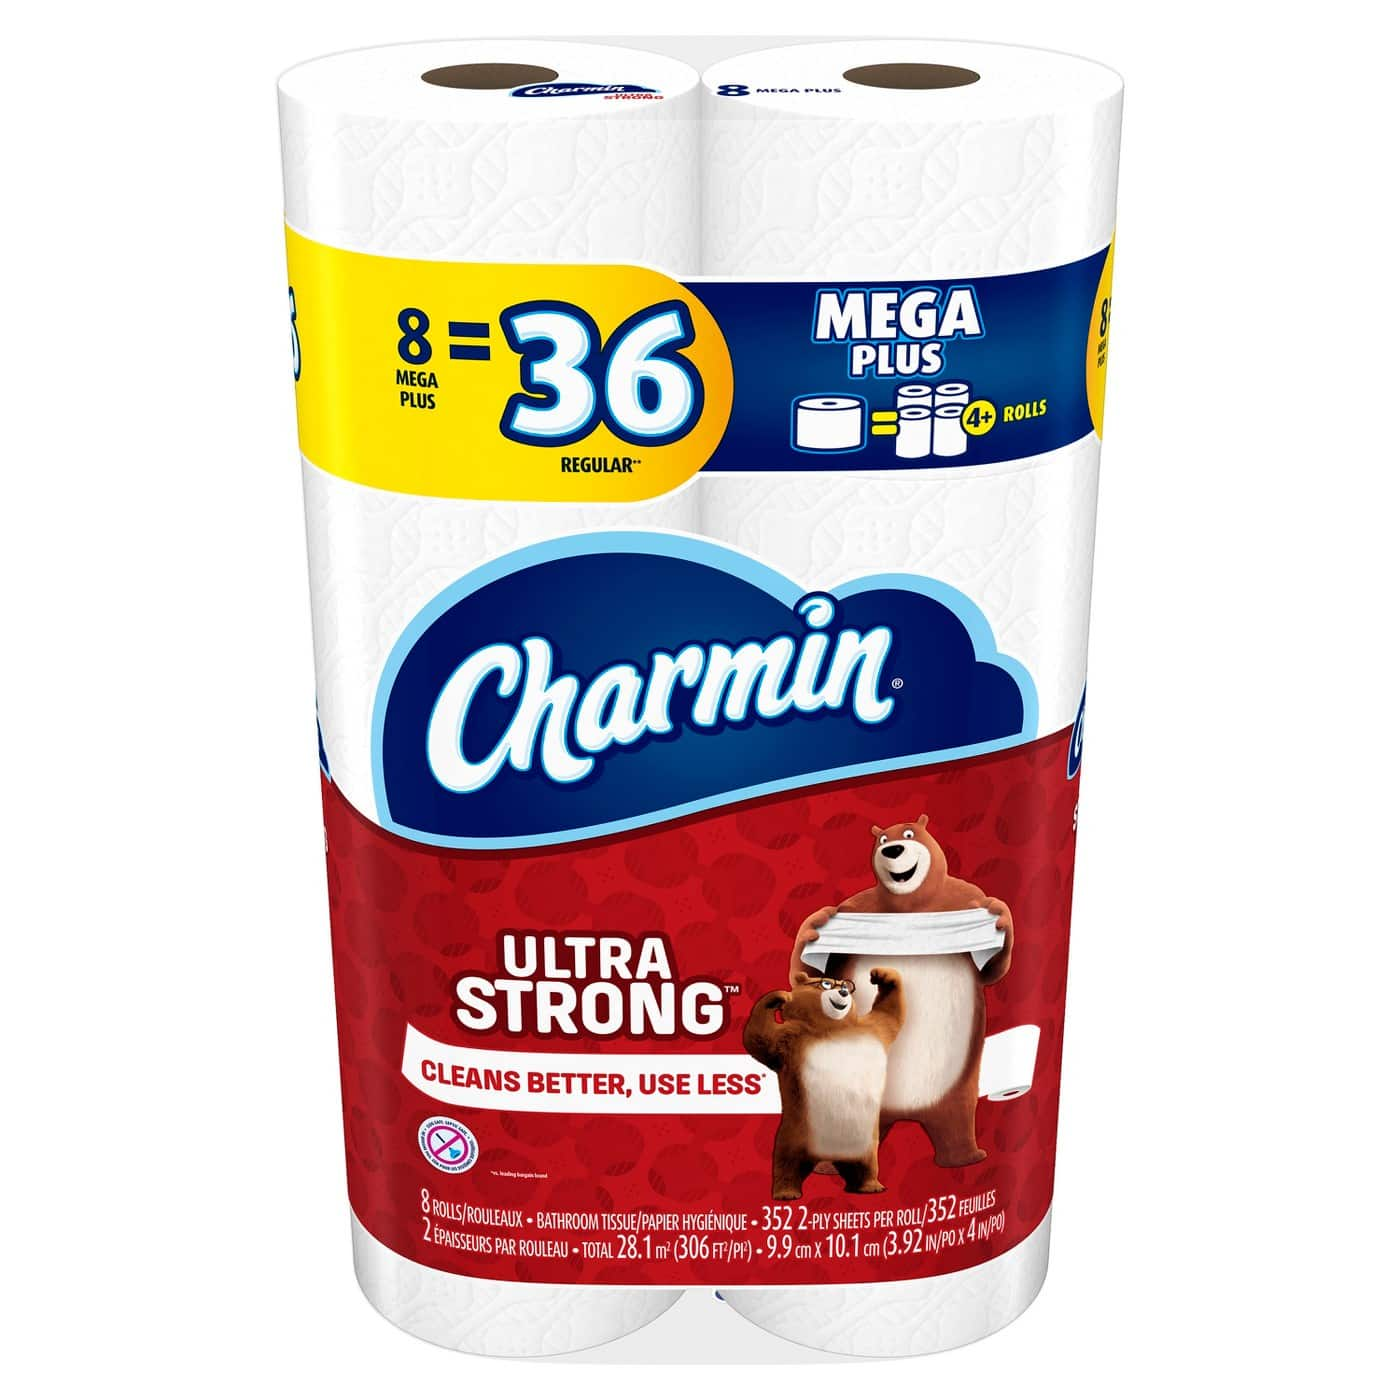 24-Ct Charmin Ultra Mega Plus Toilet Paper Rolls + $10 Target Gift Card $28.47 or 24-Ct Bounty Giant Roll Paper Towels + $10 Target Gift Card $27.90 + Free Shipping